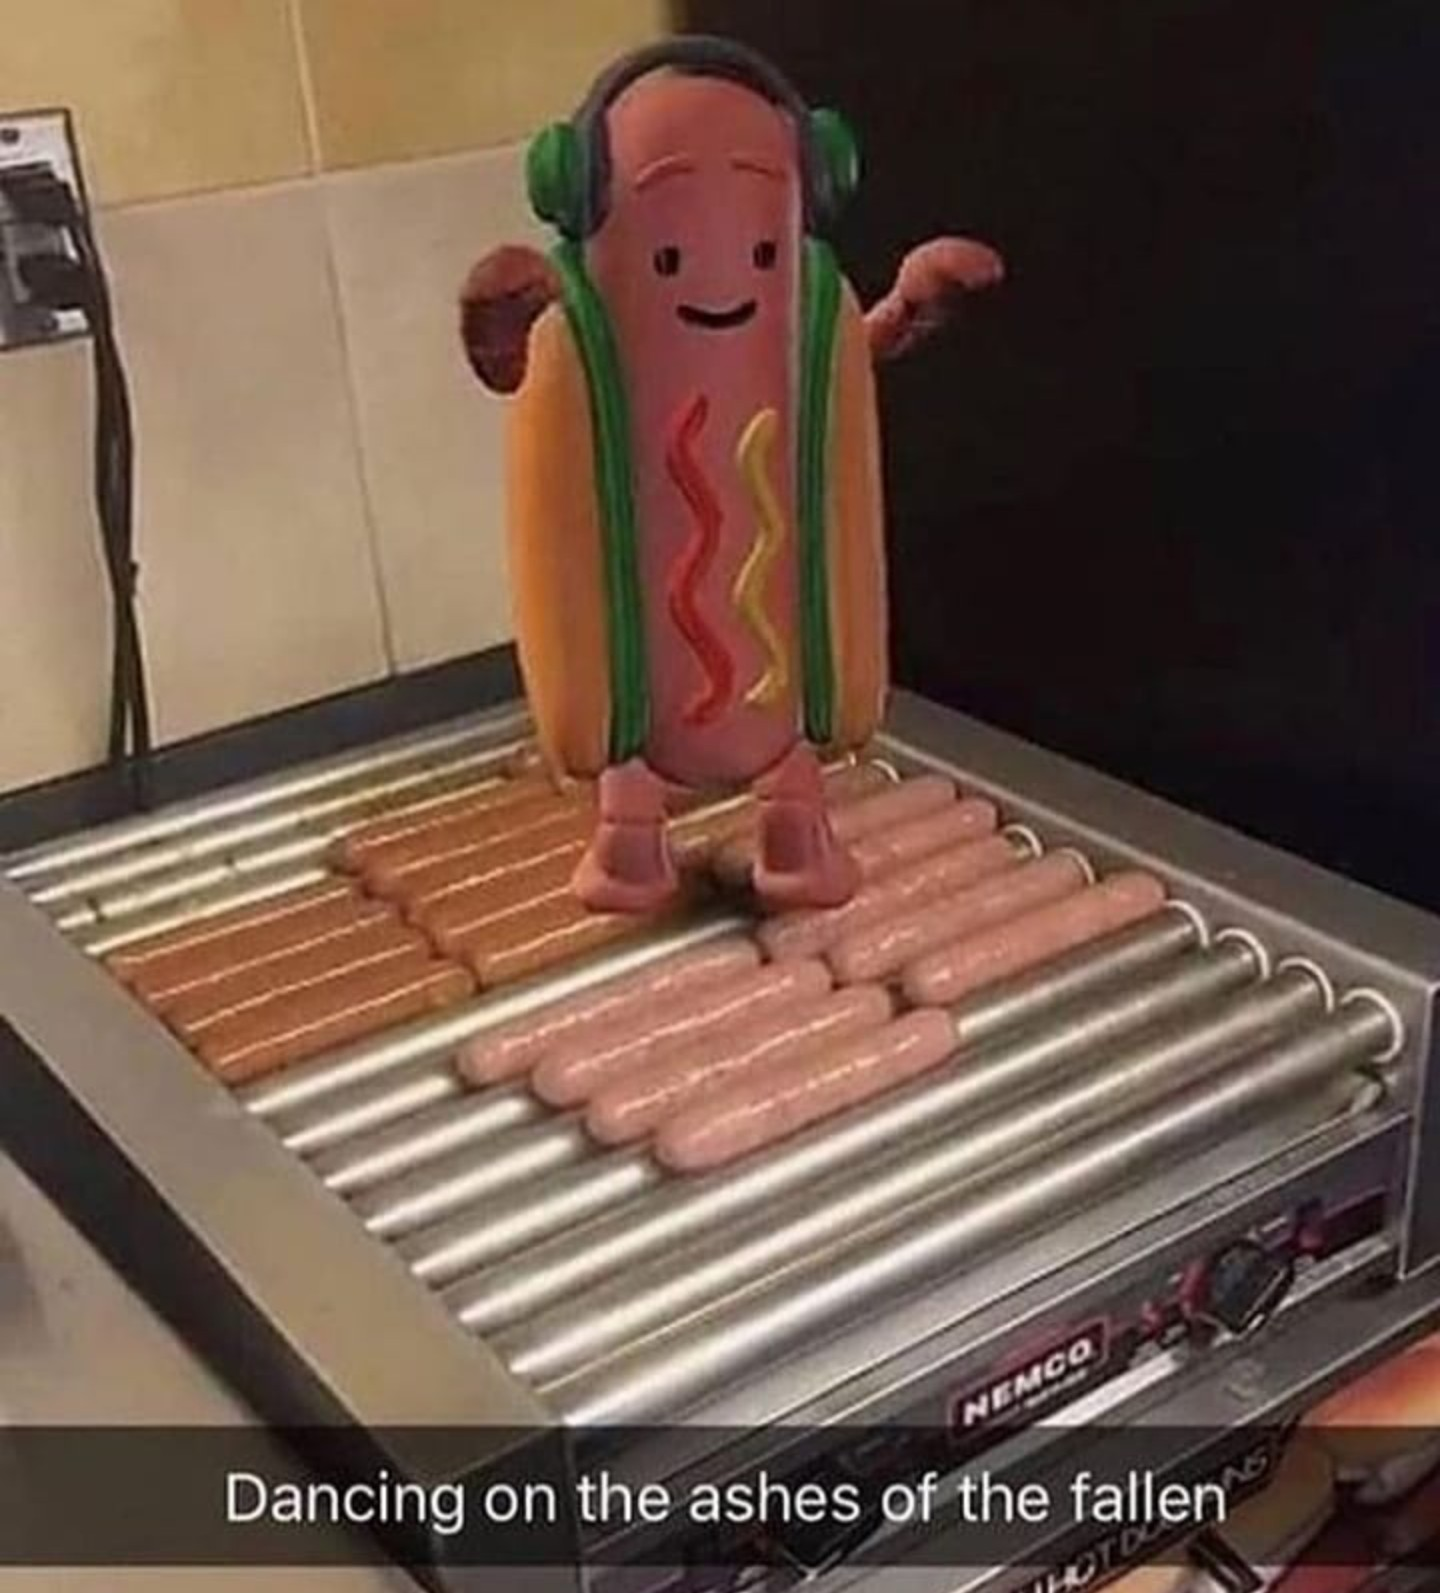 I wanna hot dog now - meme